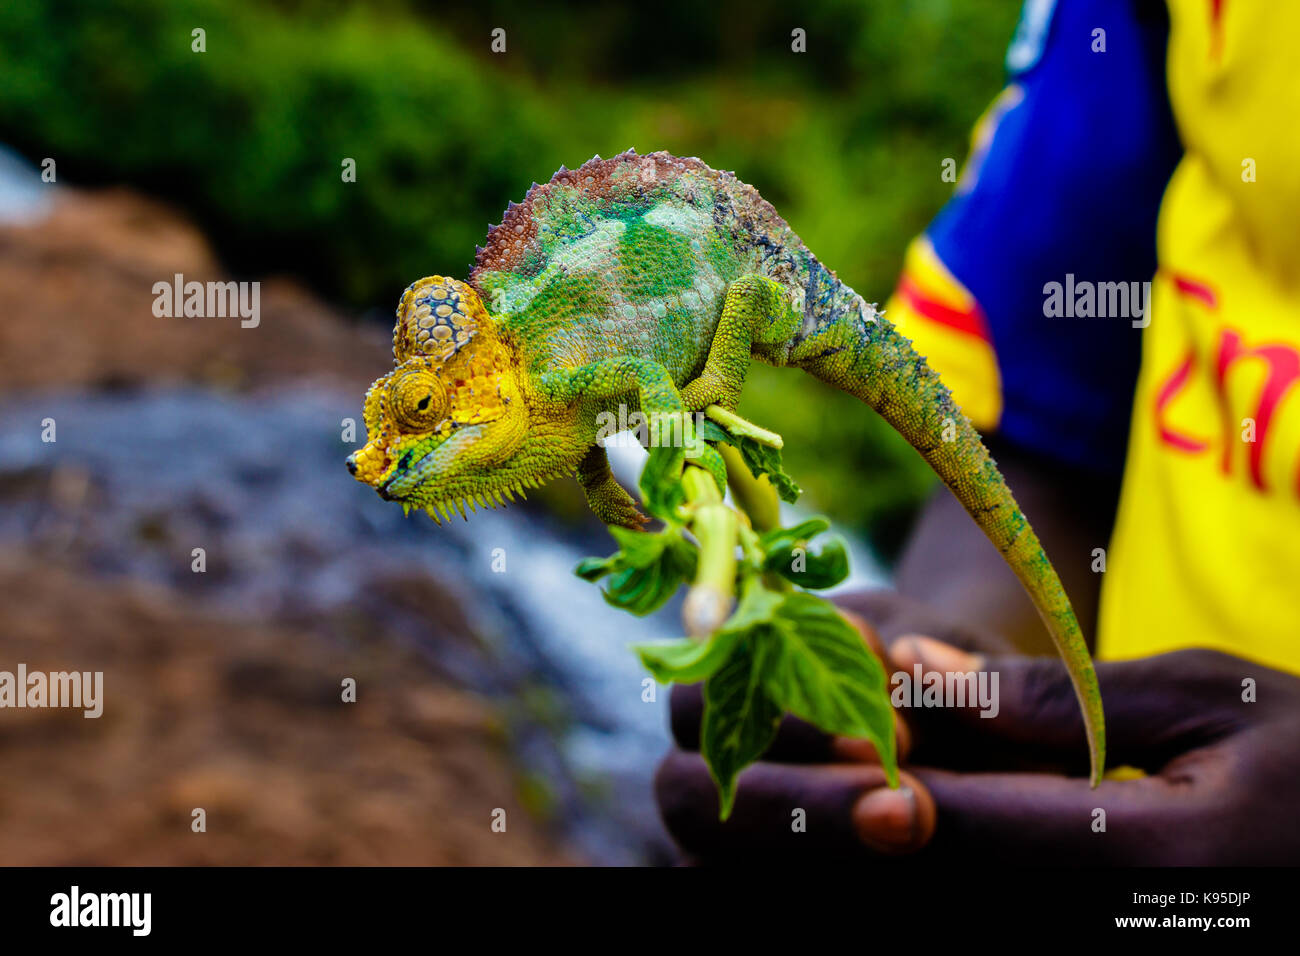 A chameleon adapting to the colors of an Arsenal football shirt - Stock Image